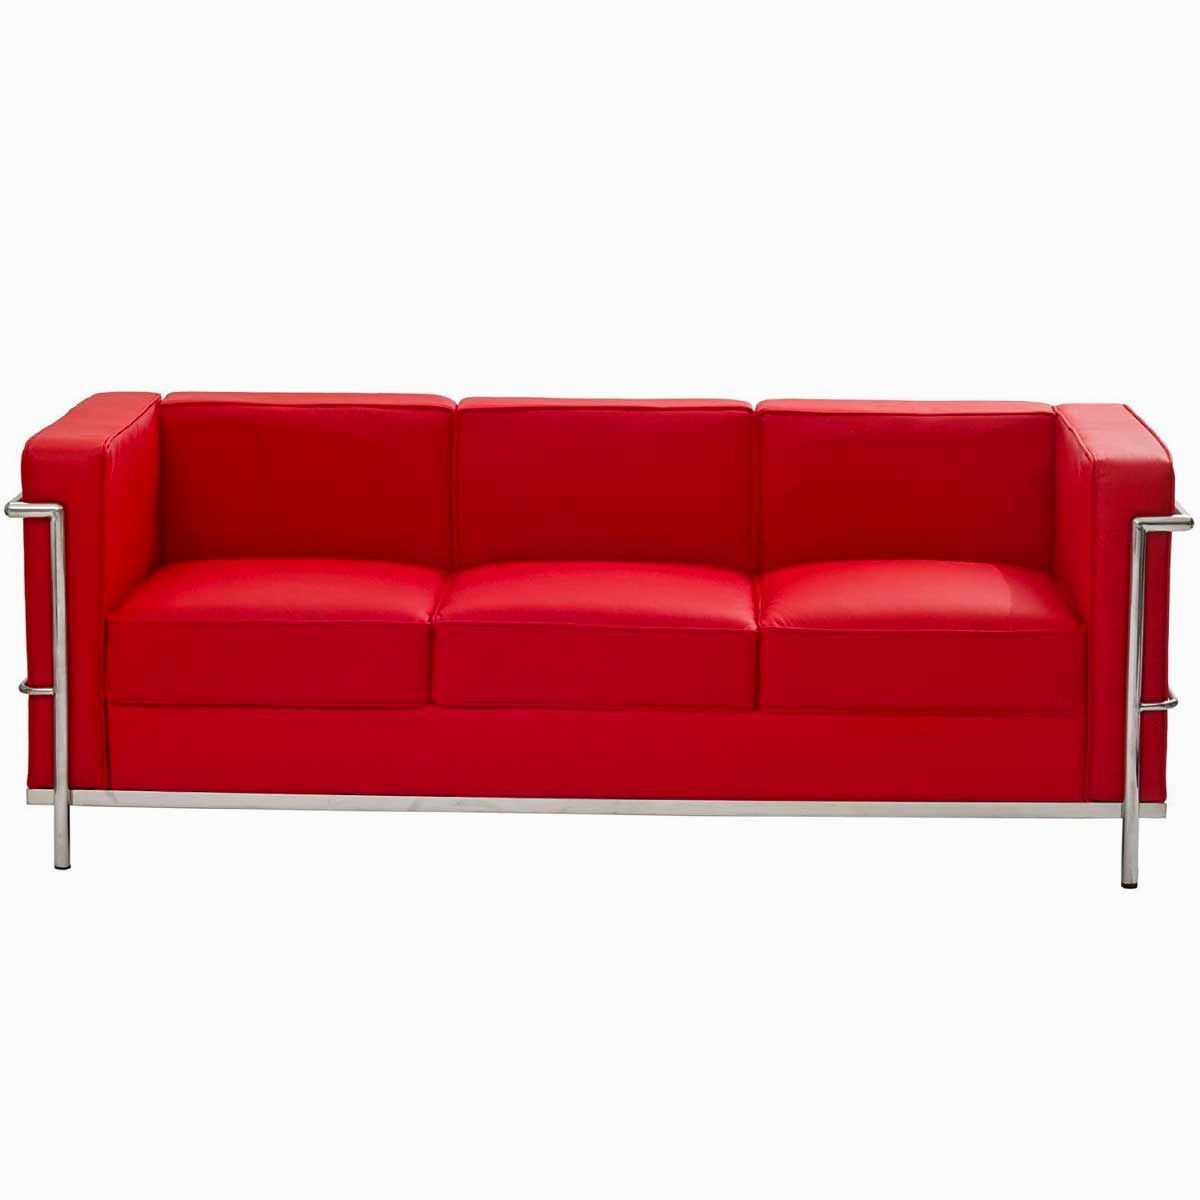 sensational leather sofa couch portrait-Incredible Leather sofa Couch Photo